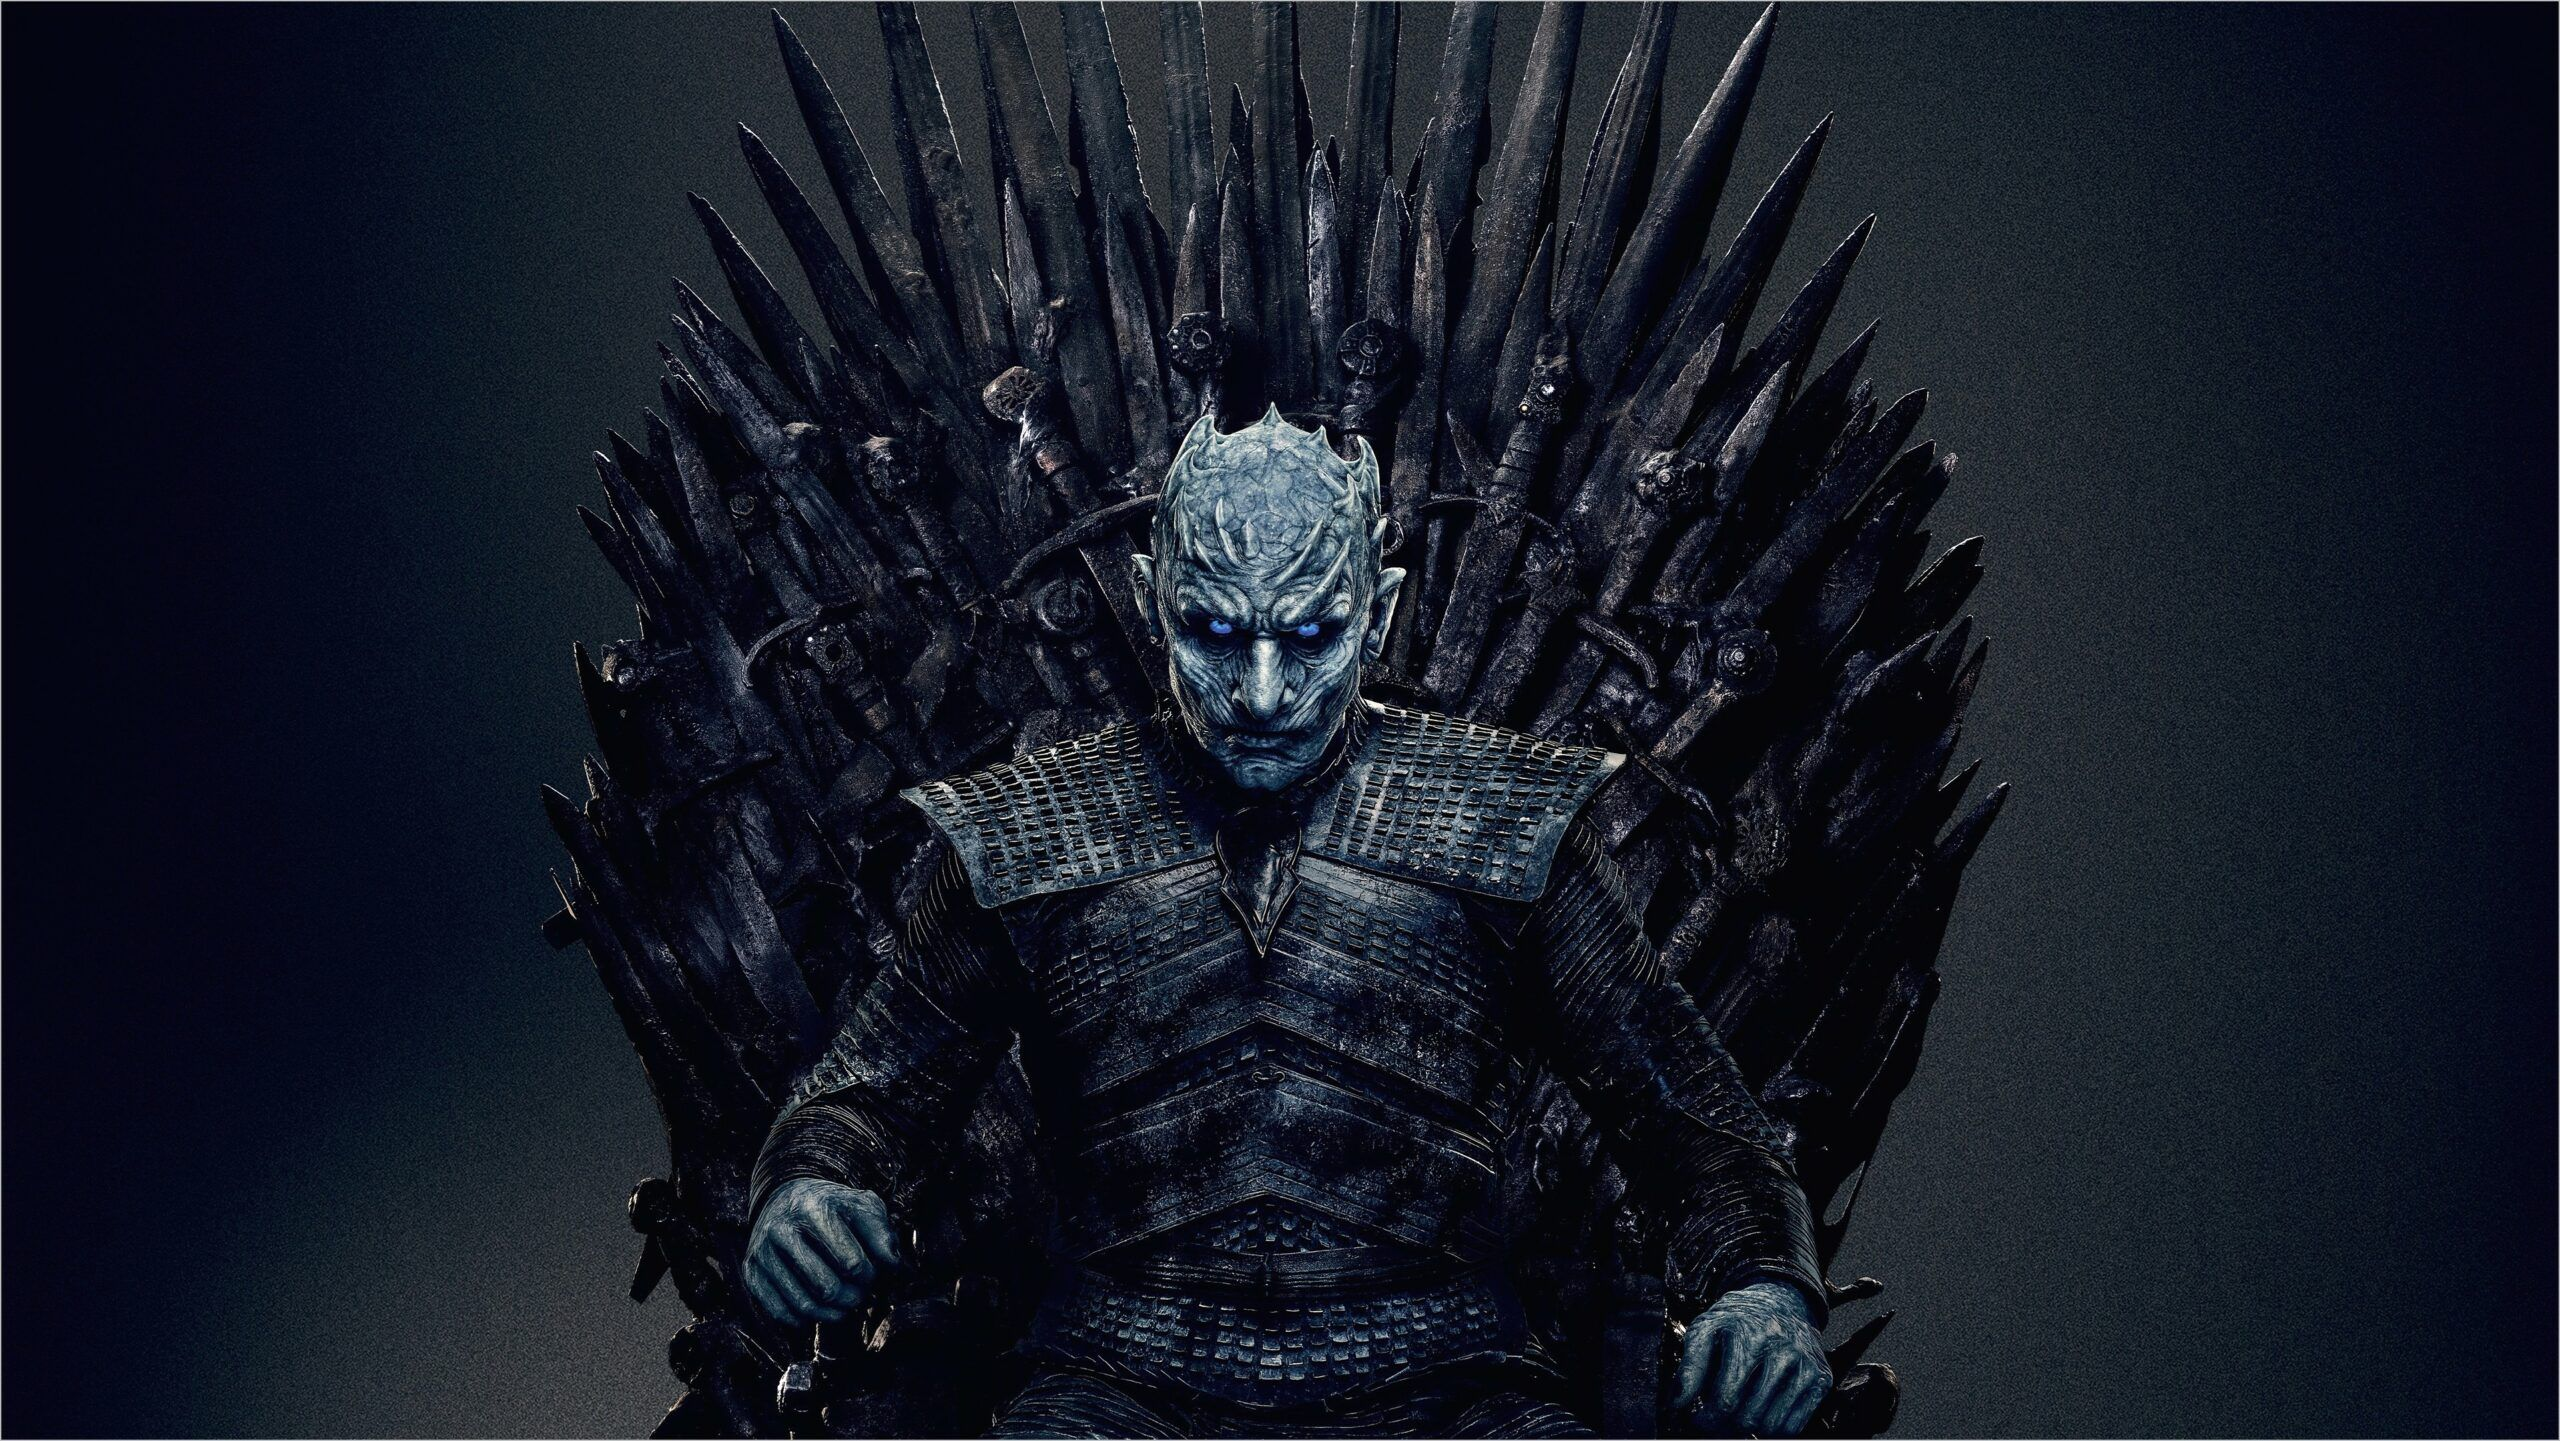 Game Of Thrones Season 8 4k Wallpaper In 2020 Gaming Wallpapers Hd Android Wallpaper Night King